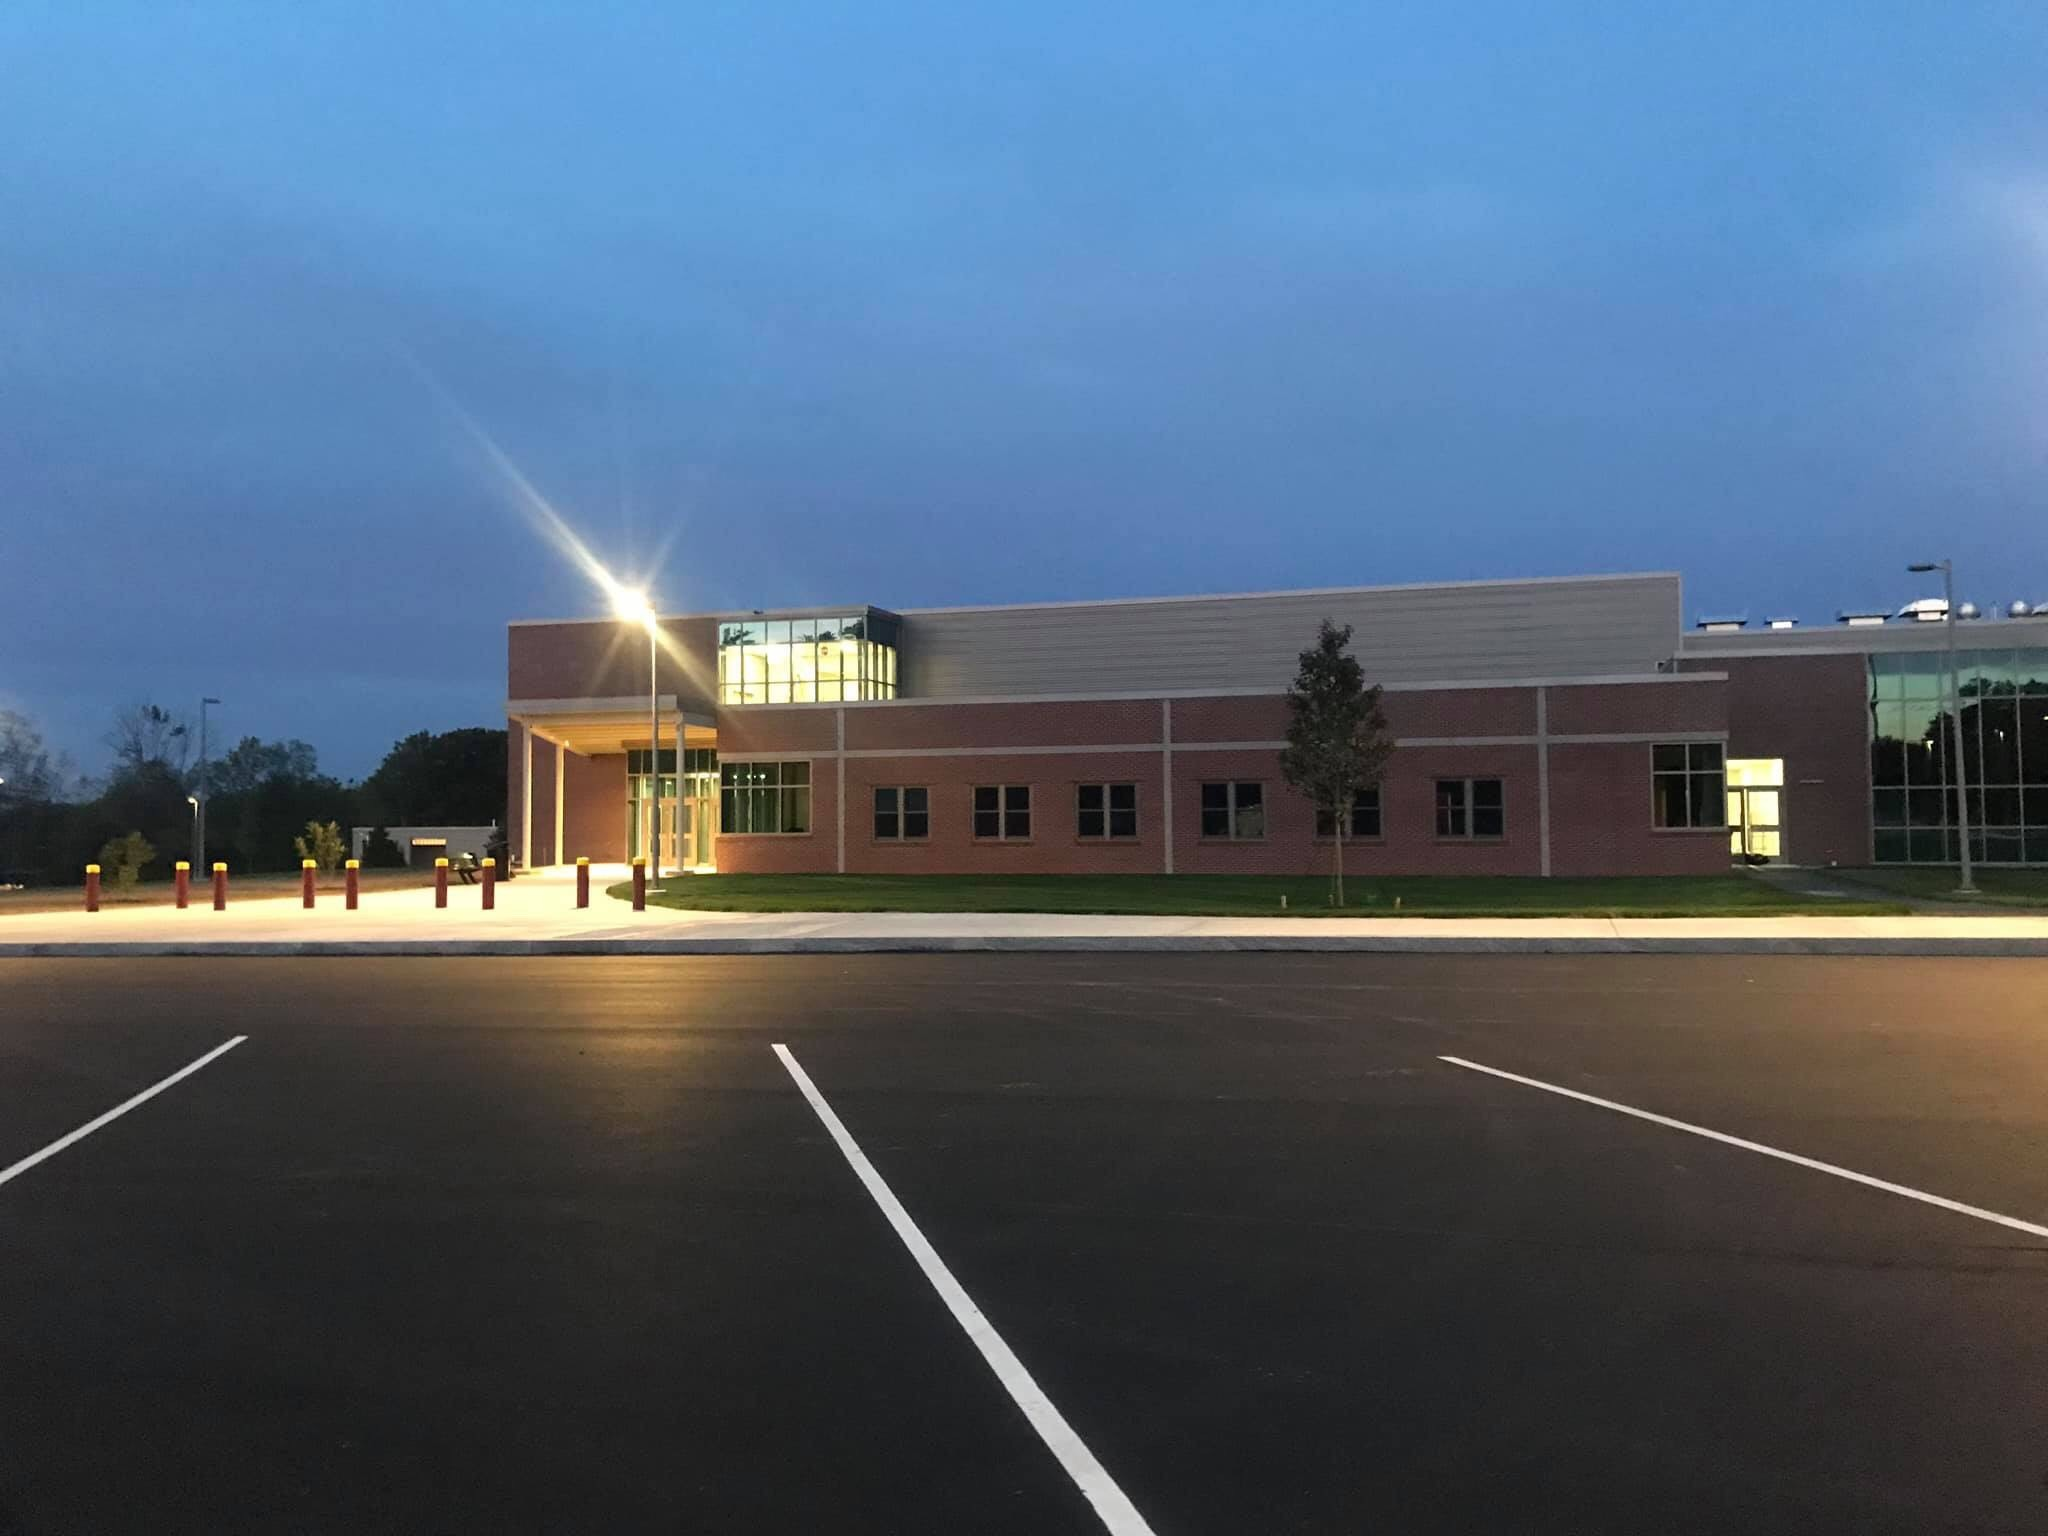 Middle School at Night